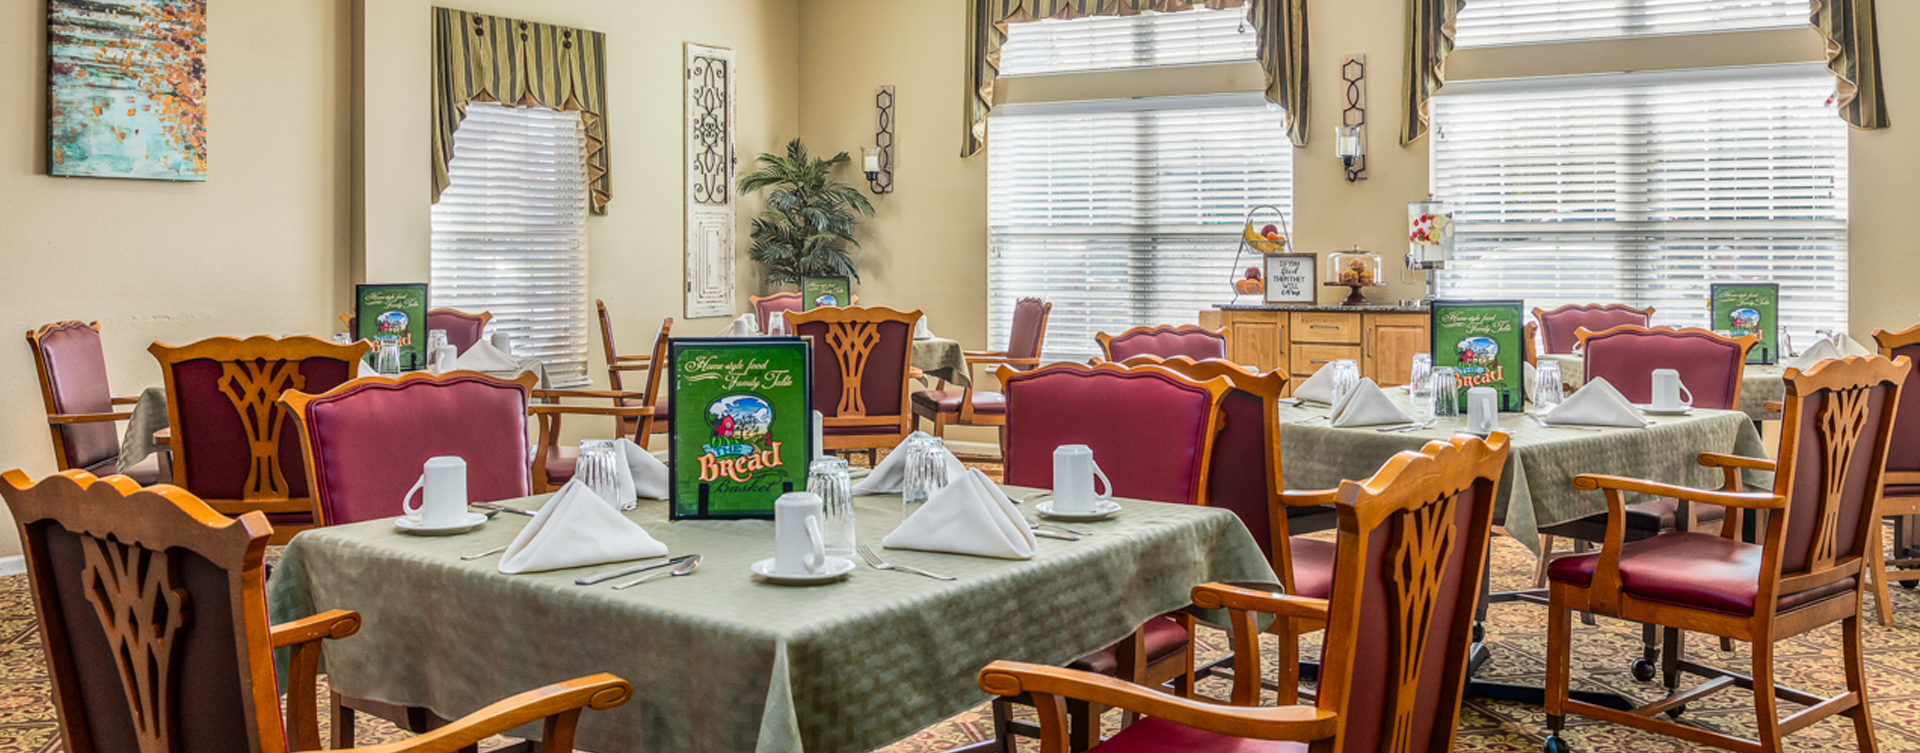 Enjoy homestyle food with made-from-scratch recipes in our dining room at Bickford of Fort Dodge